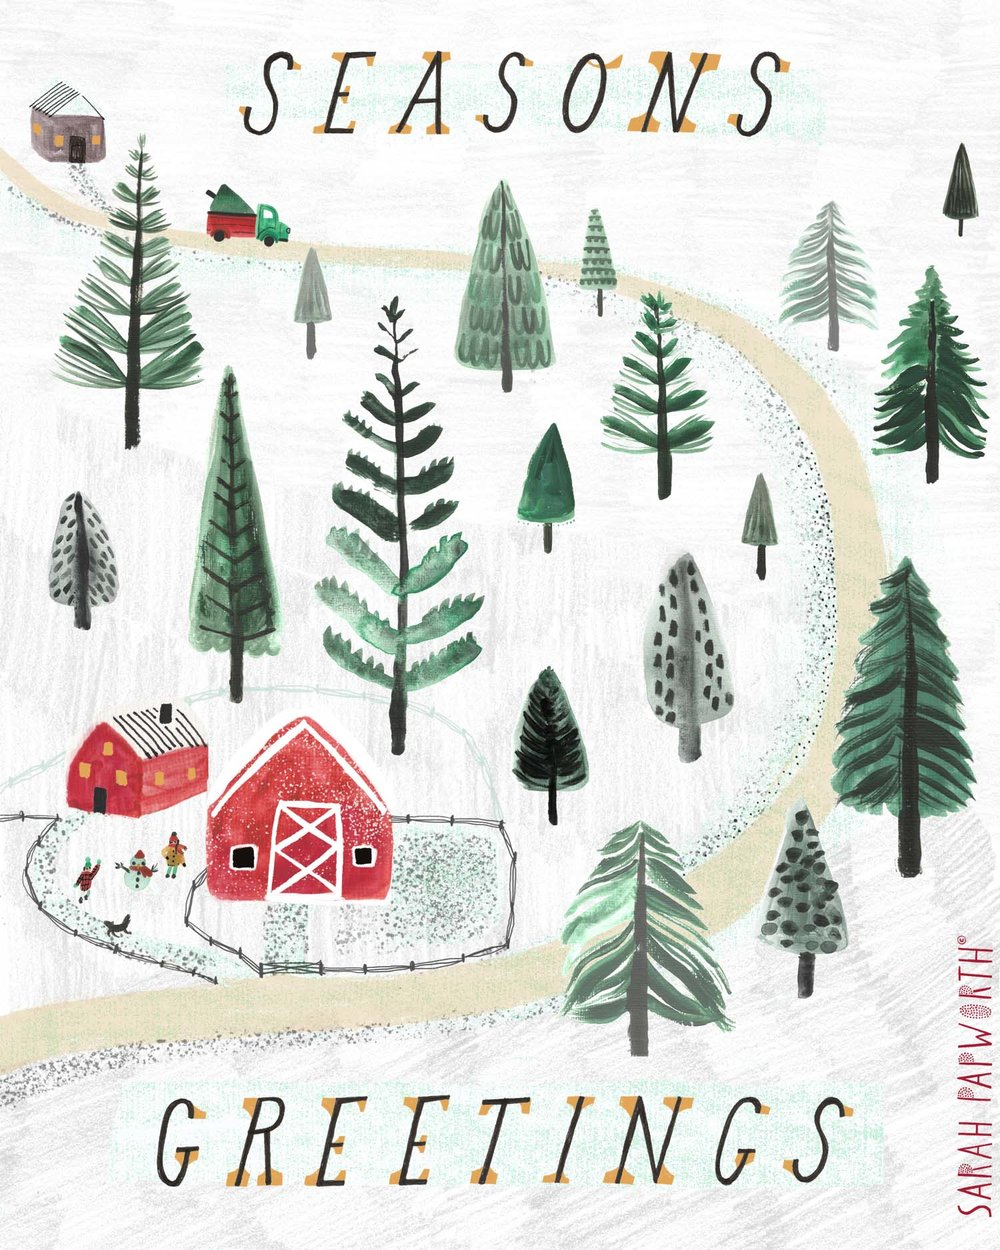 greeting card design christmas snoy scene woodland cabin sarah papworth.jpg